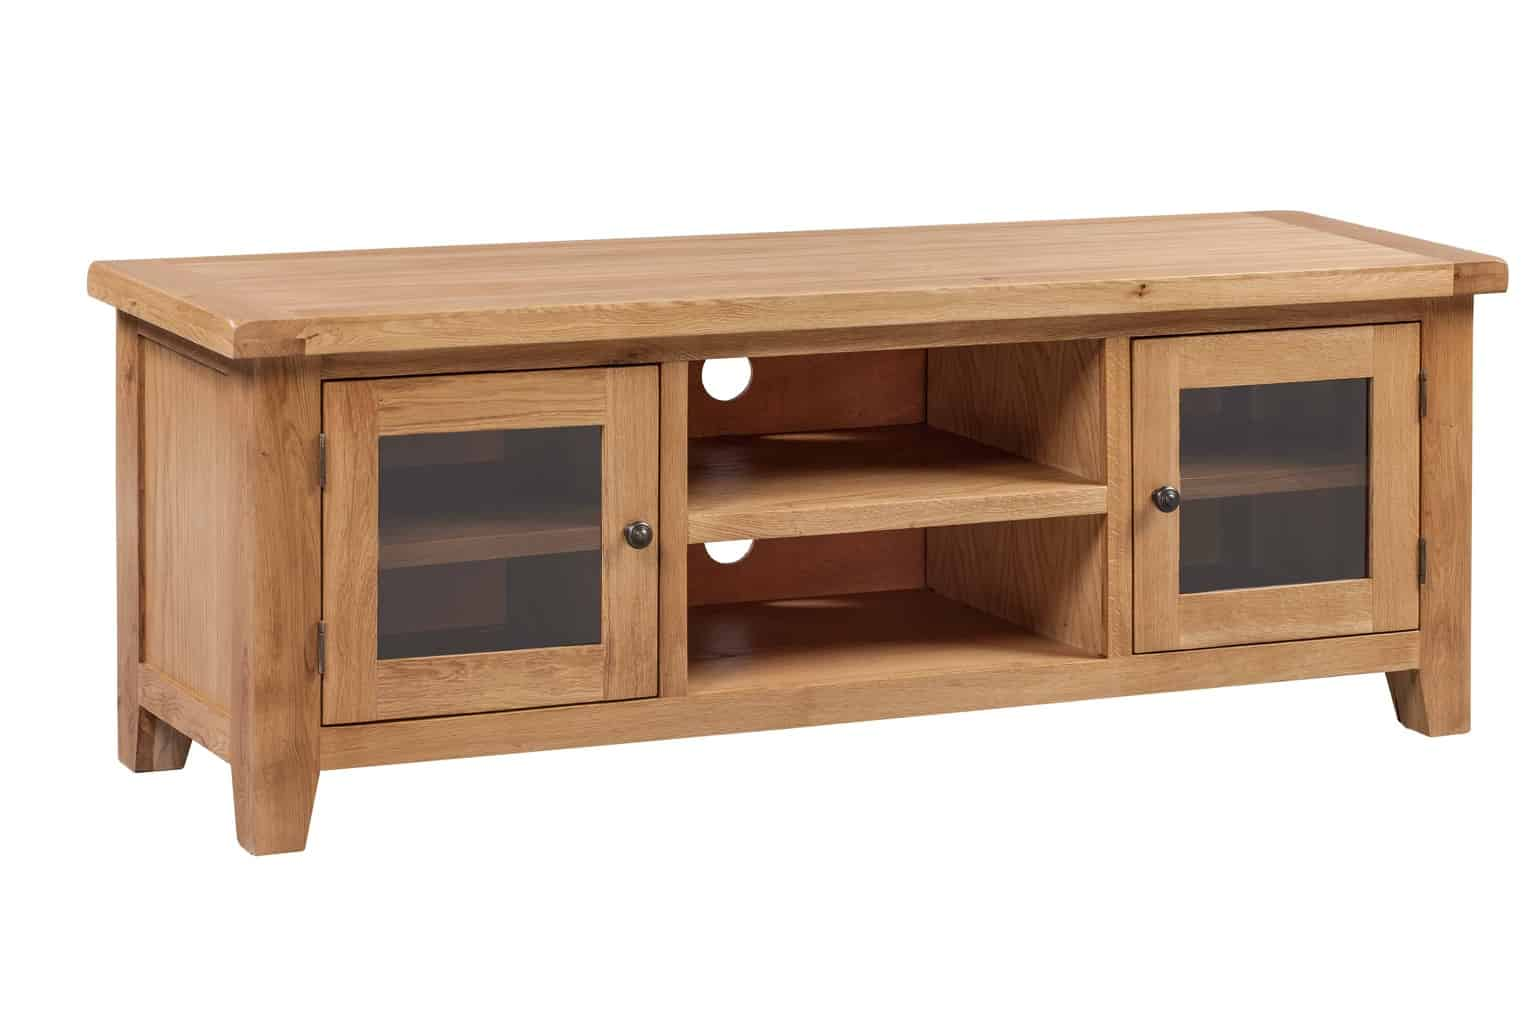 Shrewsbury Solid Chunky Wood Rustic Oak Extra Large TV LCD